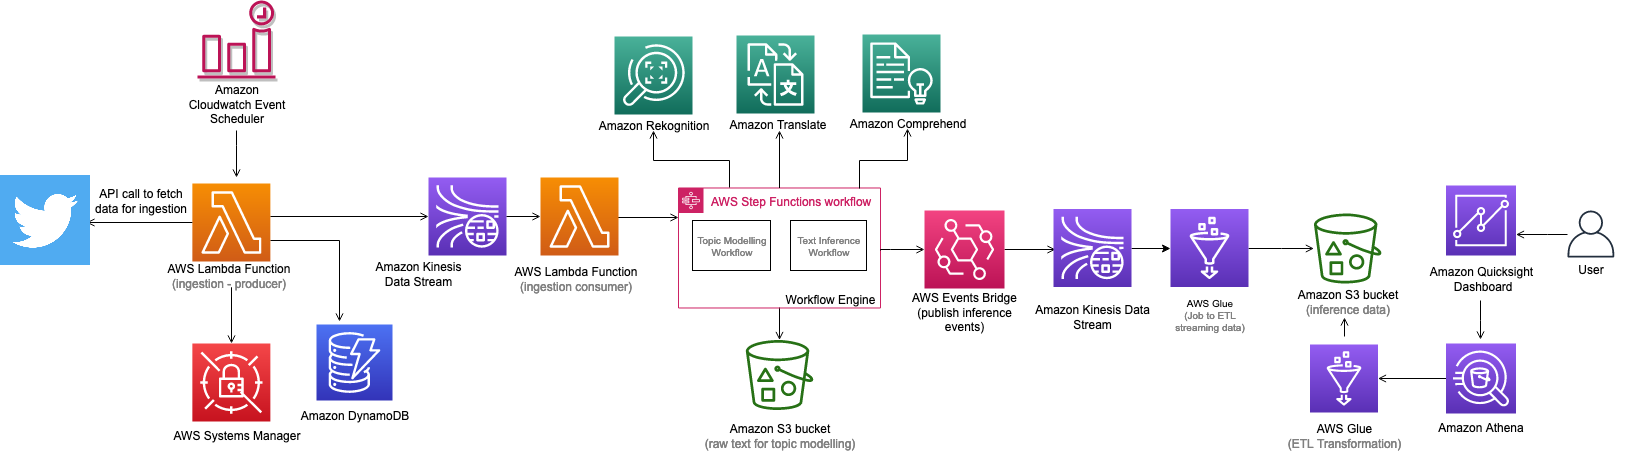 Figure 4. Discovering Hot Topics using Machine Learning solution architecture